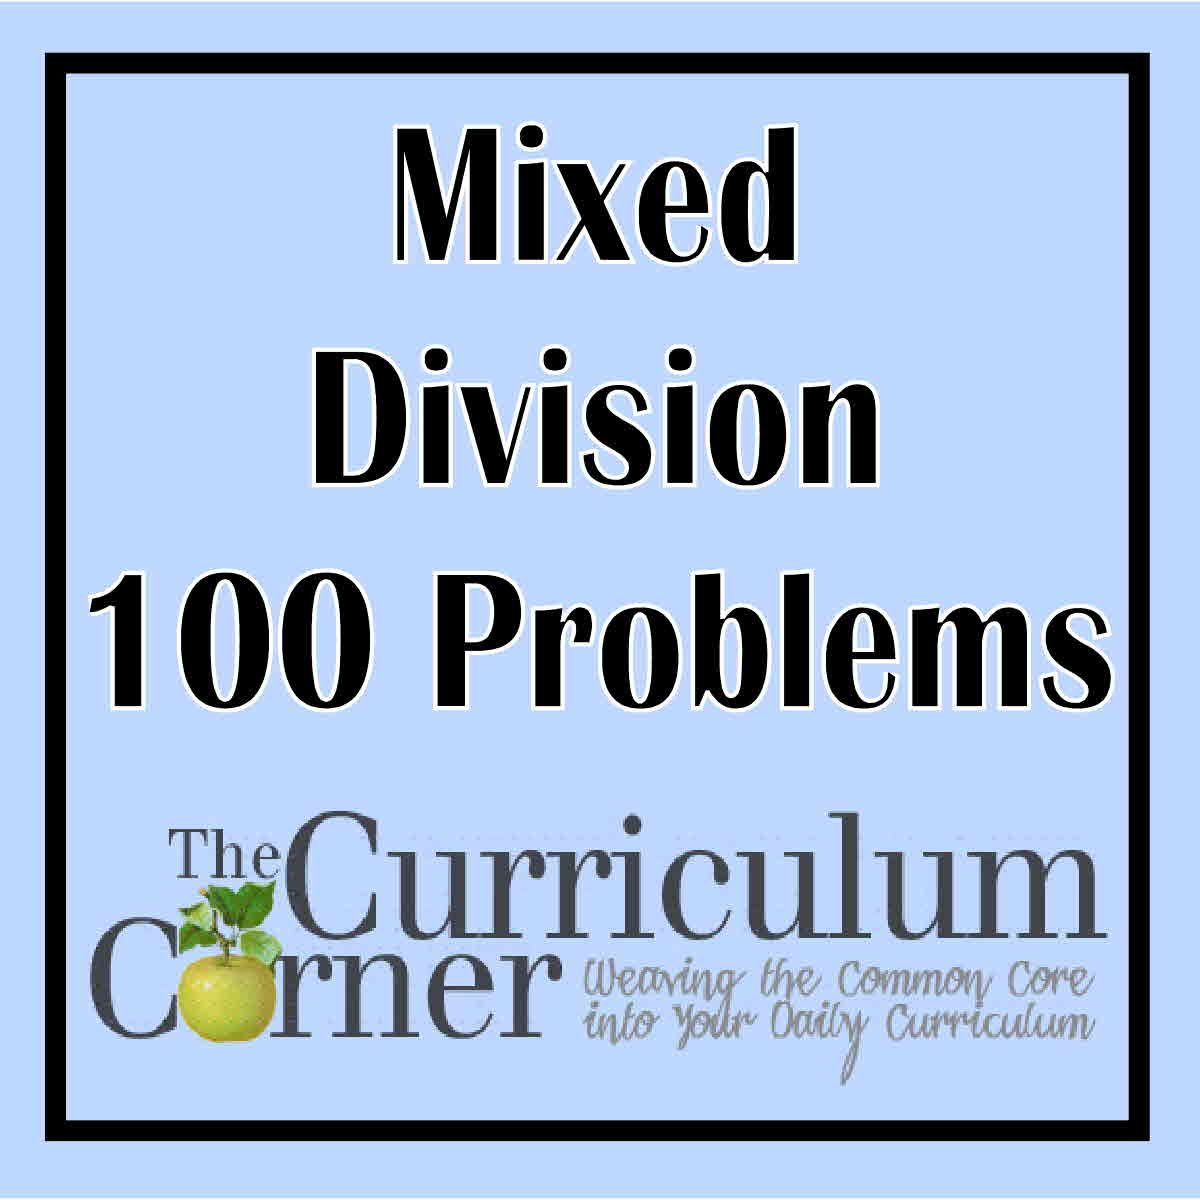 Mixed Division 100 Problems | Division, Math and Curriculum